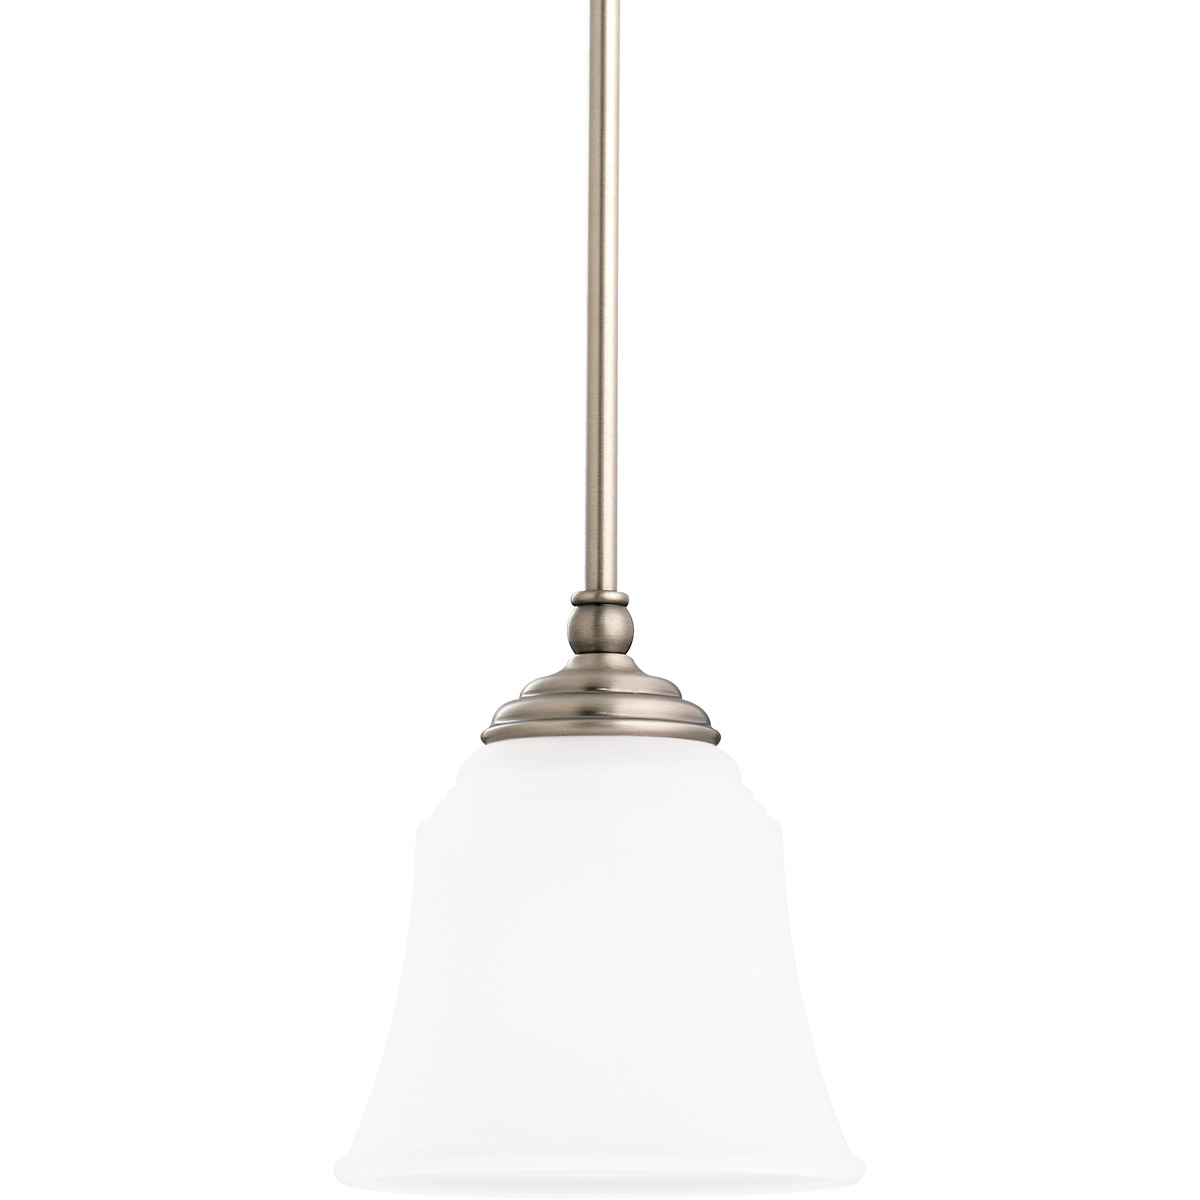 Sea Gull Lighting Parkview 1 Light Mini Pendant in Antique Brushed Nickel 61380-965